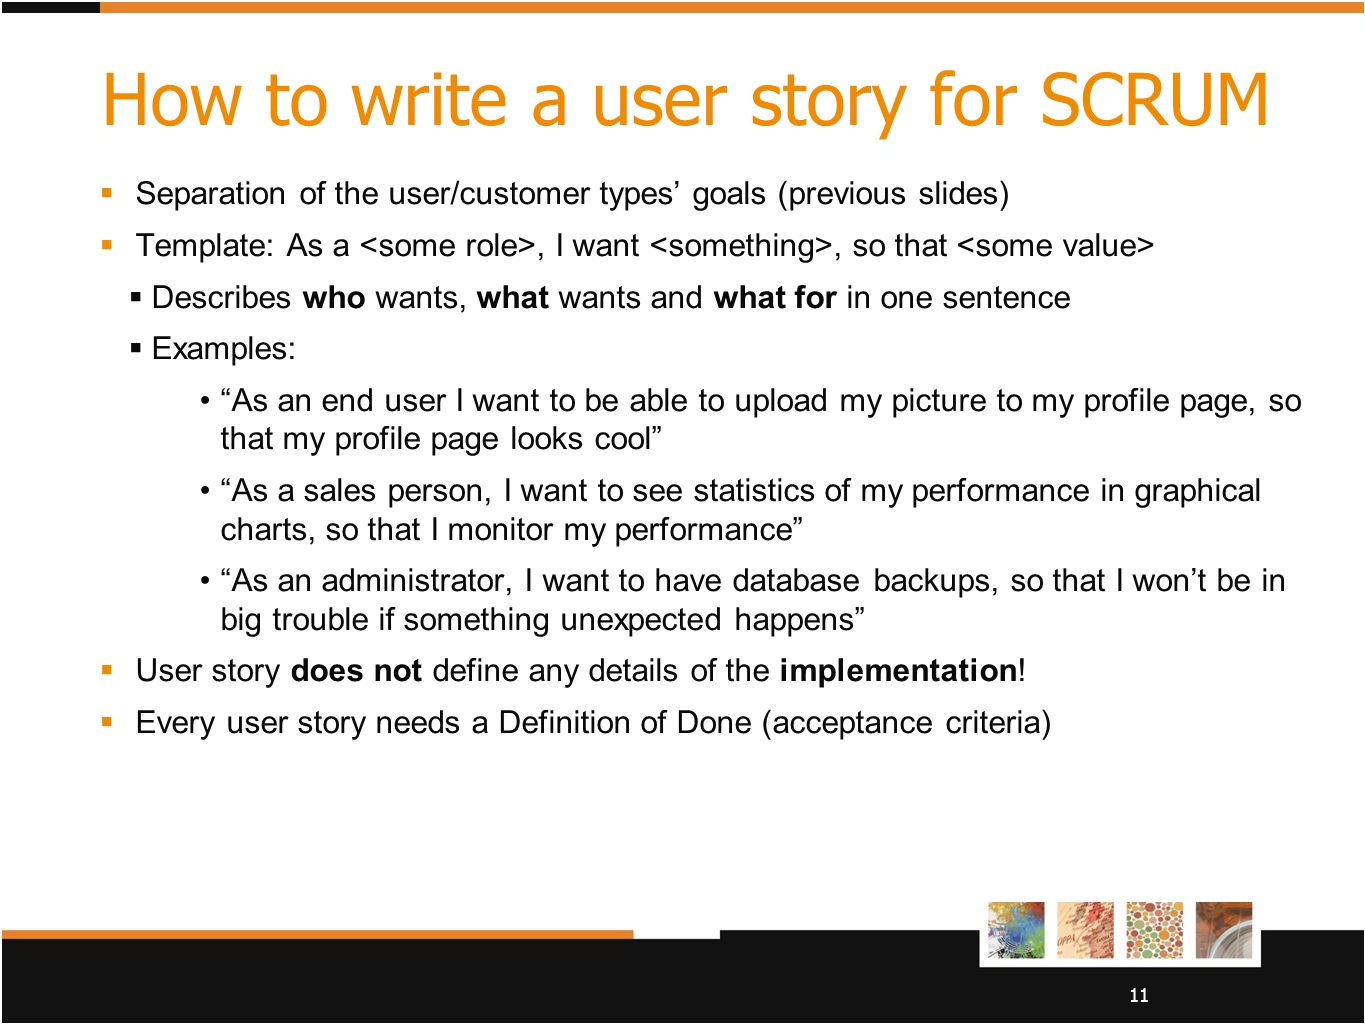 11 How to write a user story for SCRUM  Separation of the user/customer types' goals (previous slides)  Template: As a, I want, so that  Describes